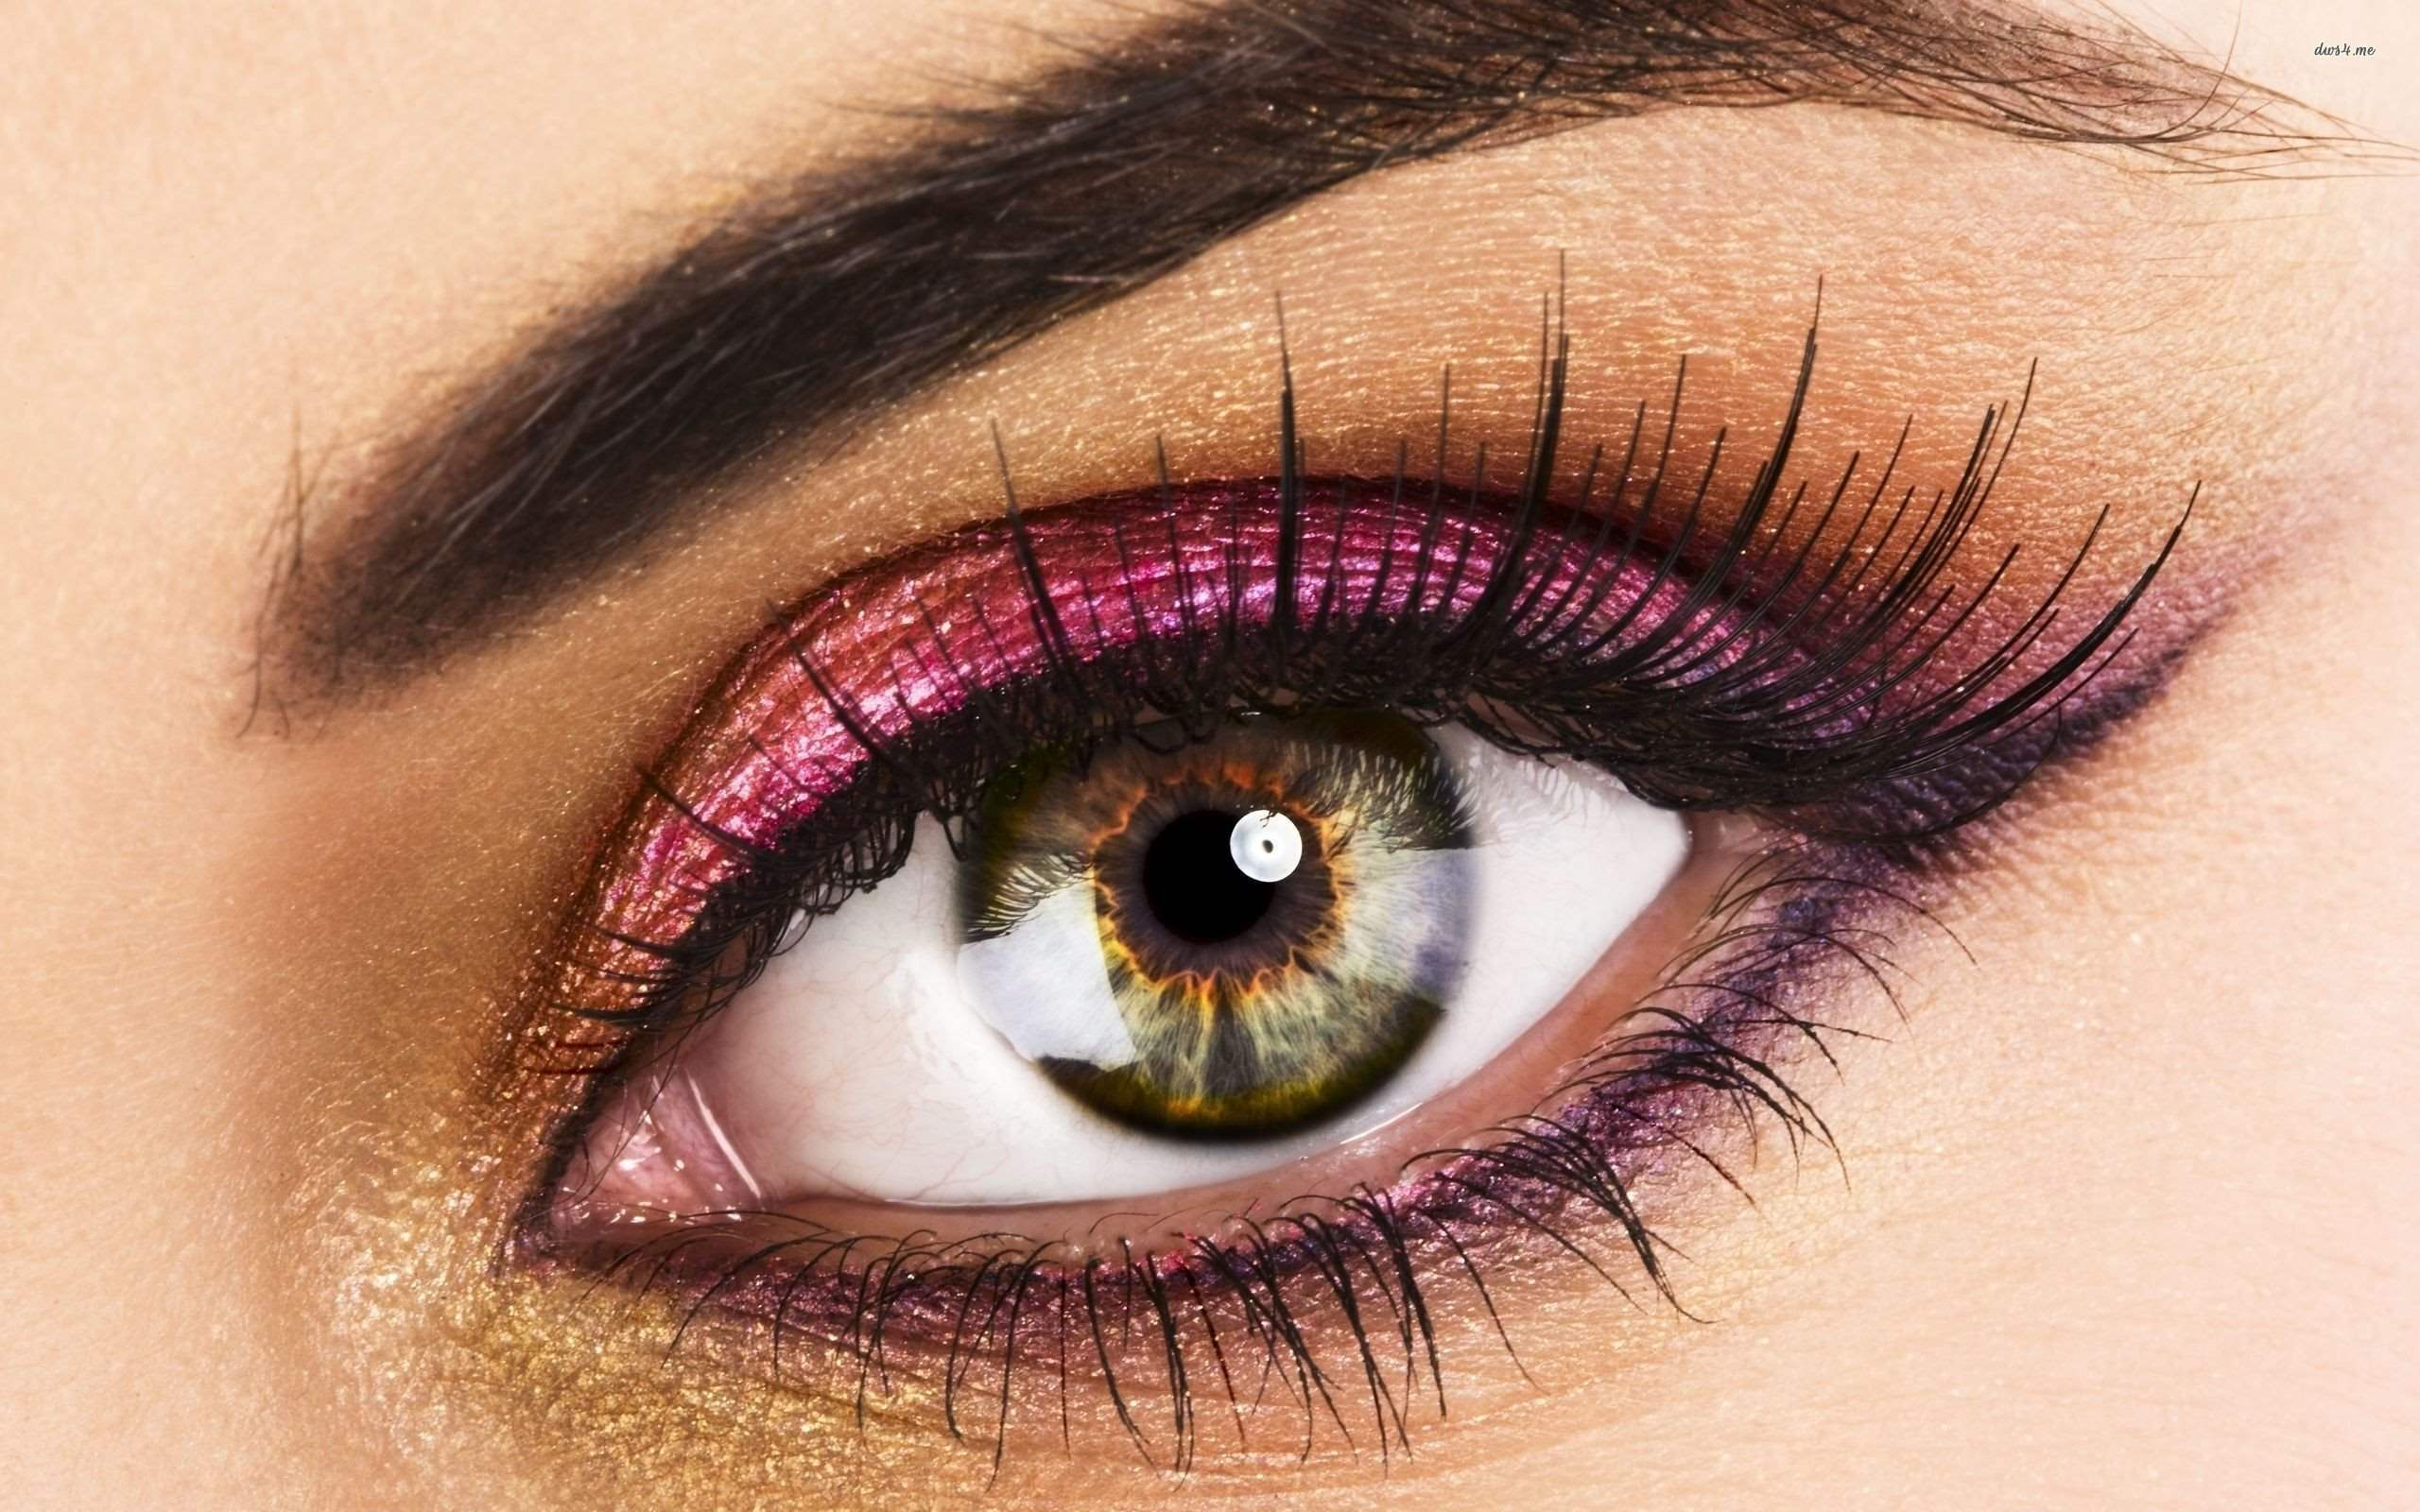 creative eye makeup looks and design ideas